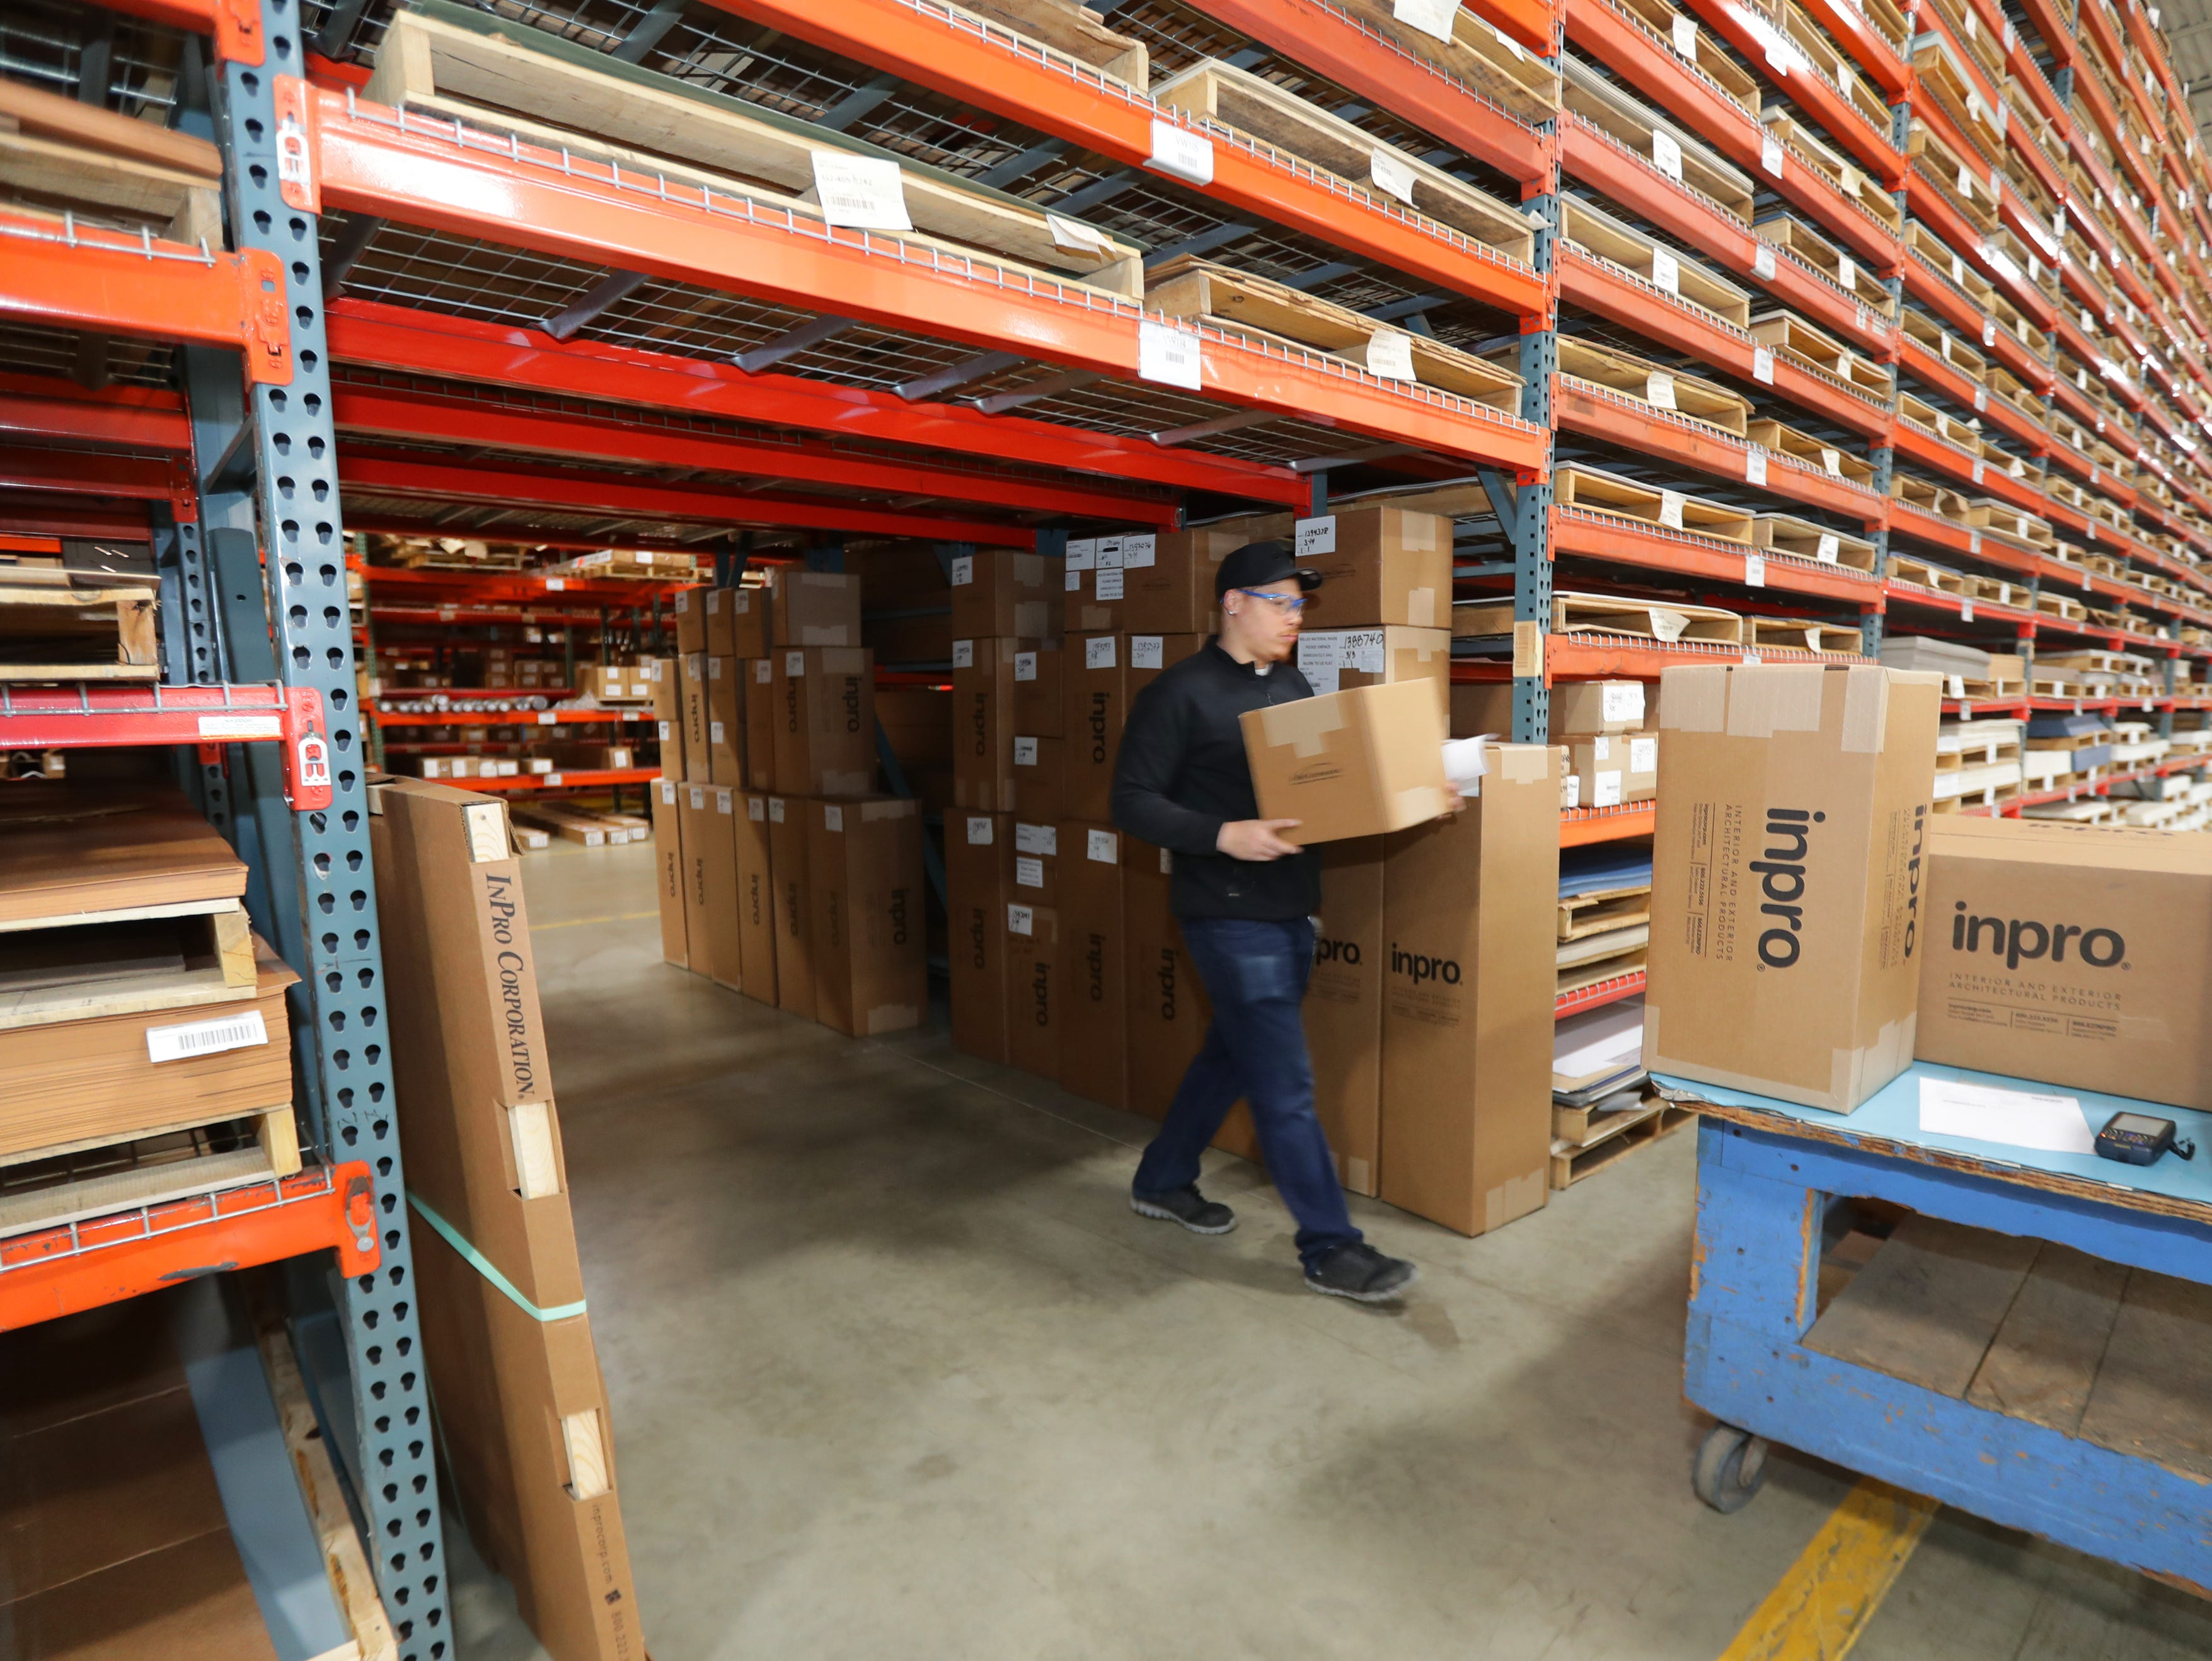 Anthony Burt, an Inpro Corp. UPS shipper, pulls kick plates for doors to be shipped in the distribution area at Inpro in Muskego.